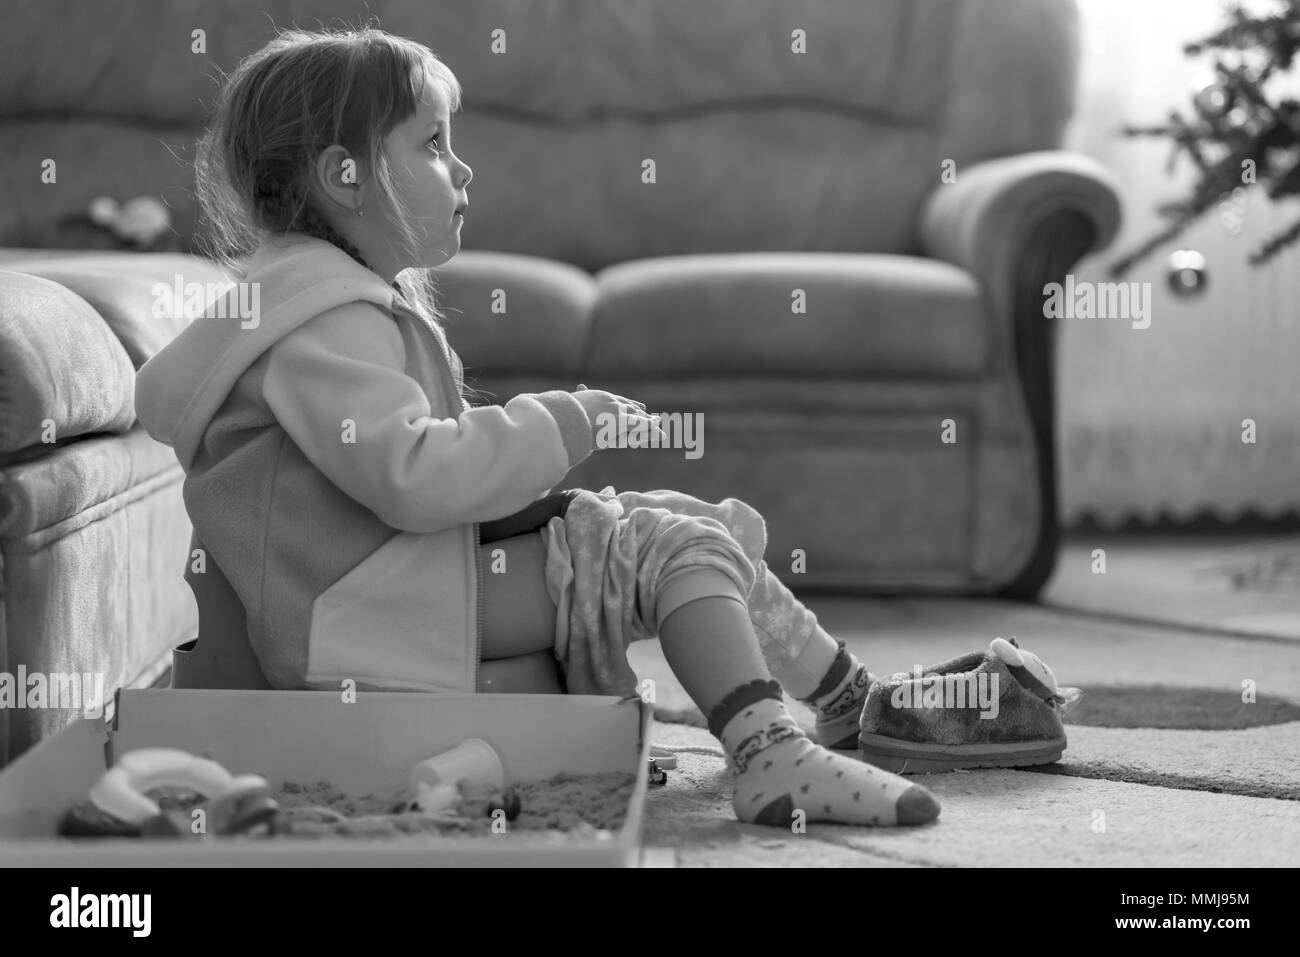 Little four years old girl sitting on potty, playing with kinetic sand and watching TV, monochrome effect - Stock Image